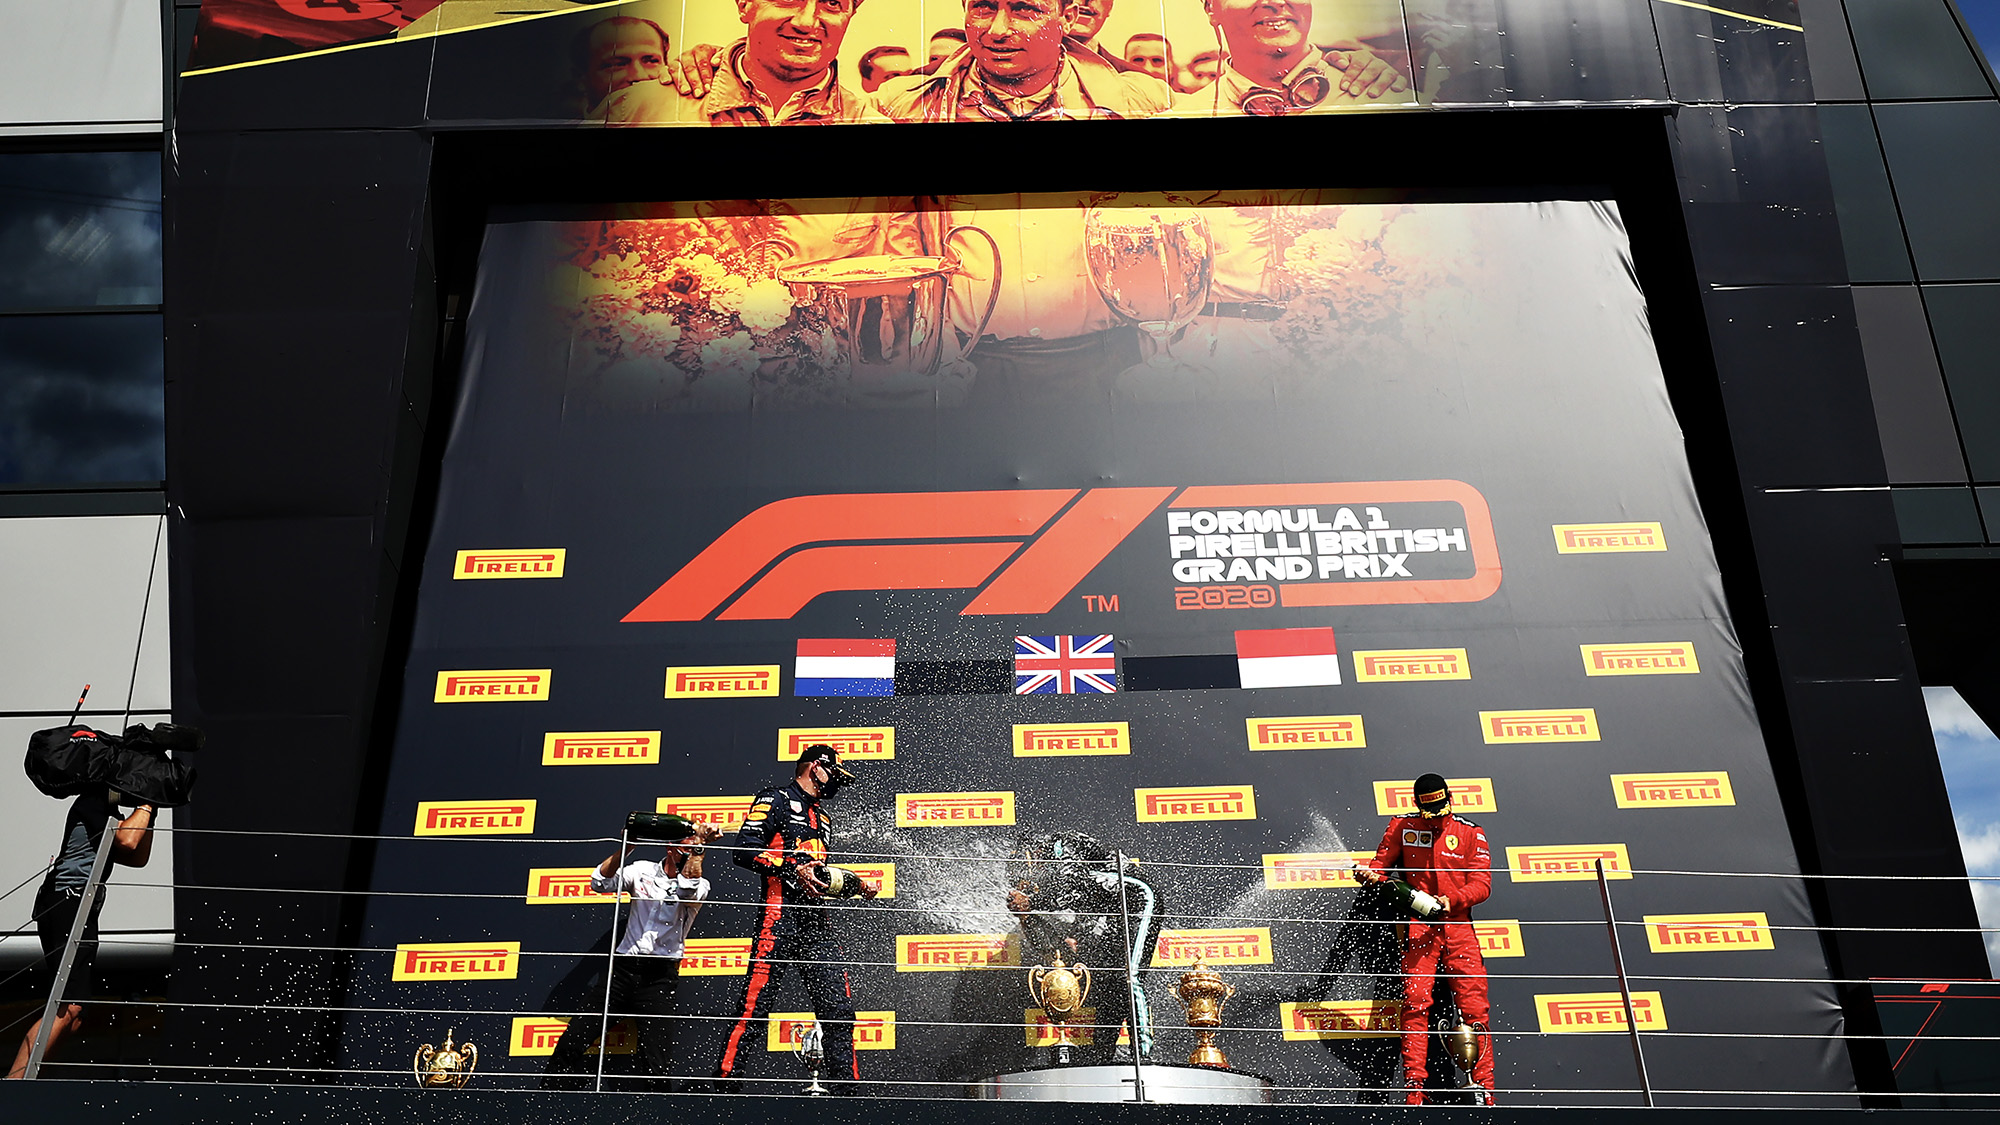 British GP podium celebrations withe Lewis Hamilton Max Verstappen and Charles Leclerc spraying champagne